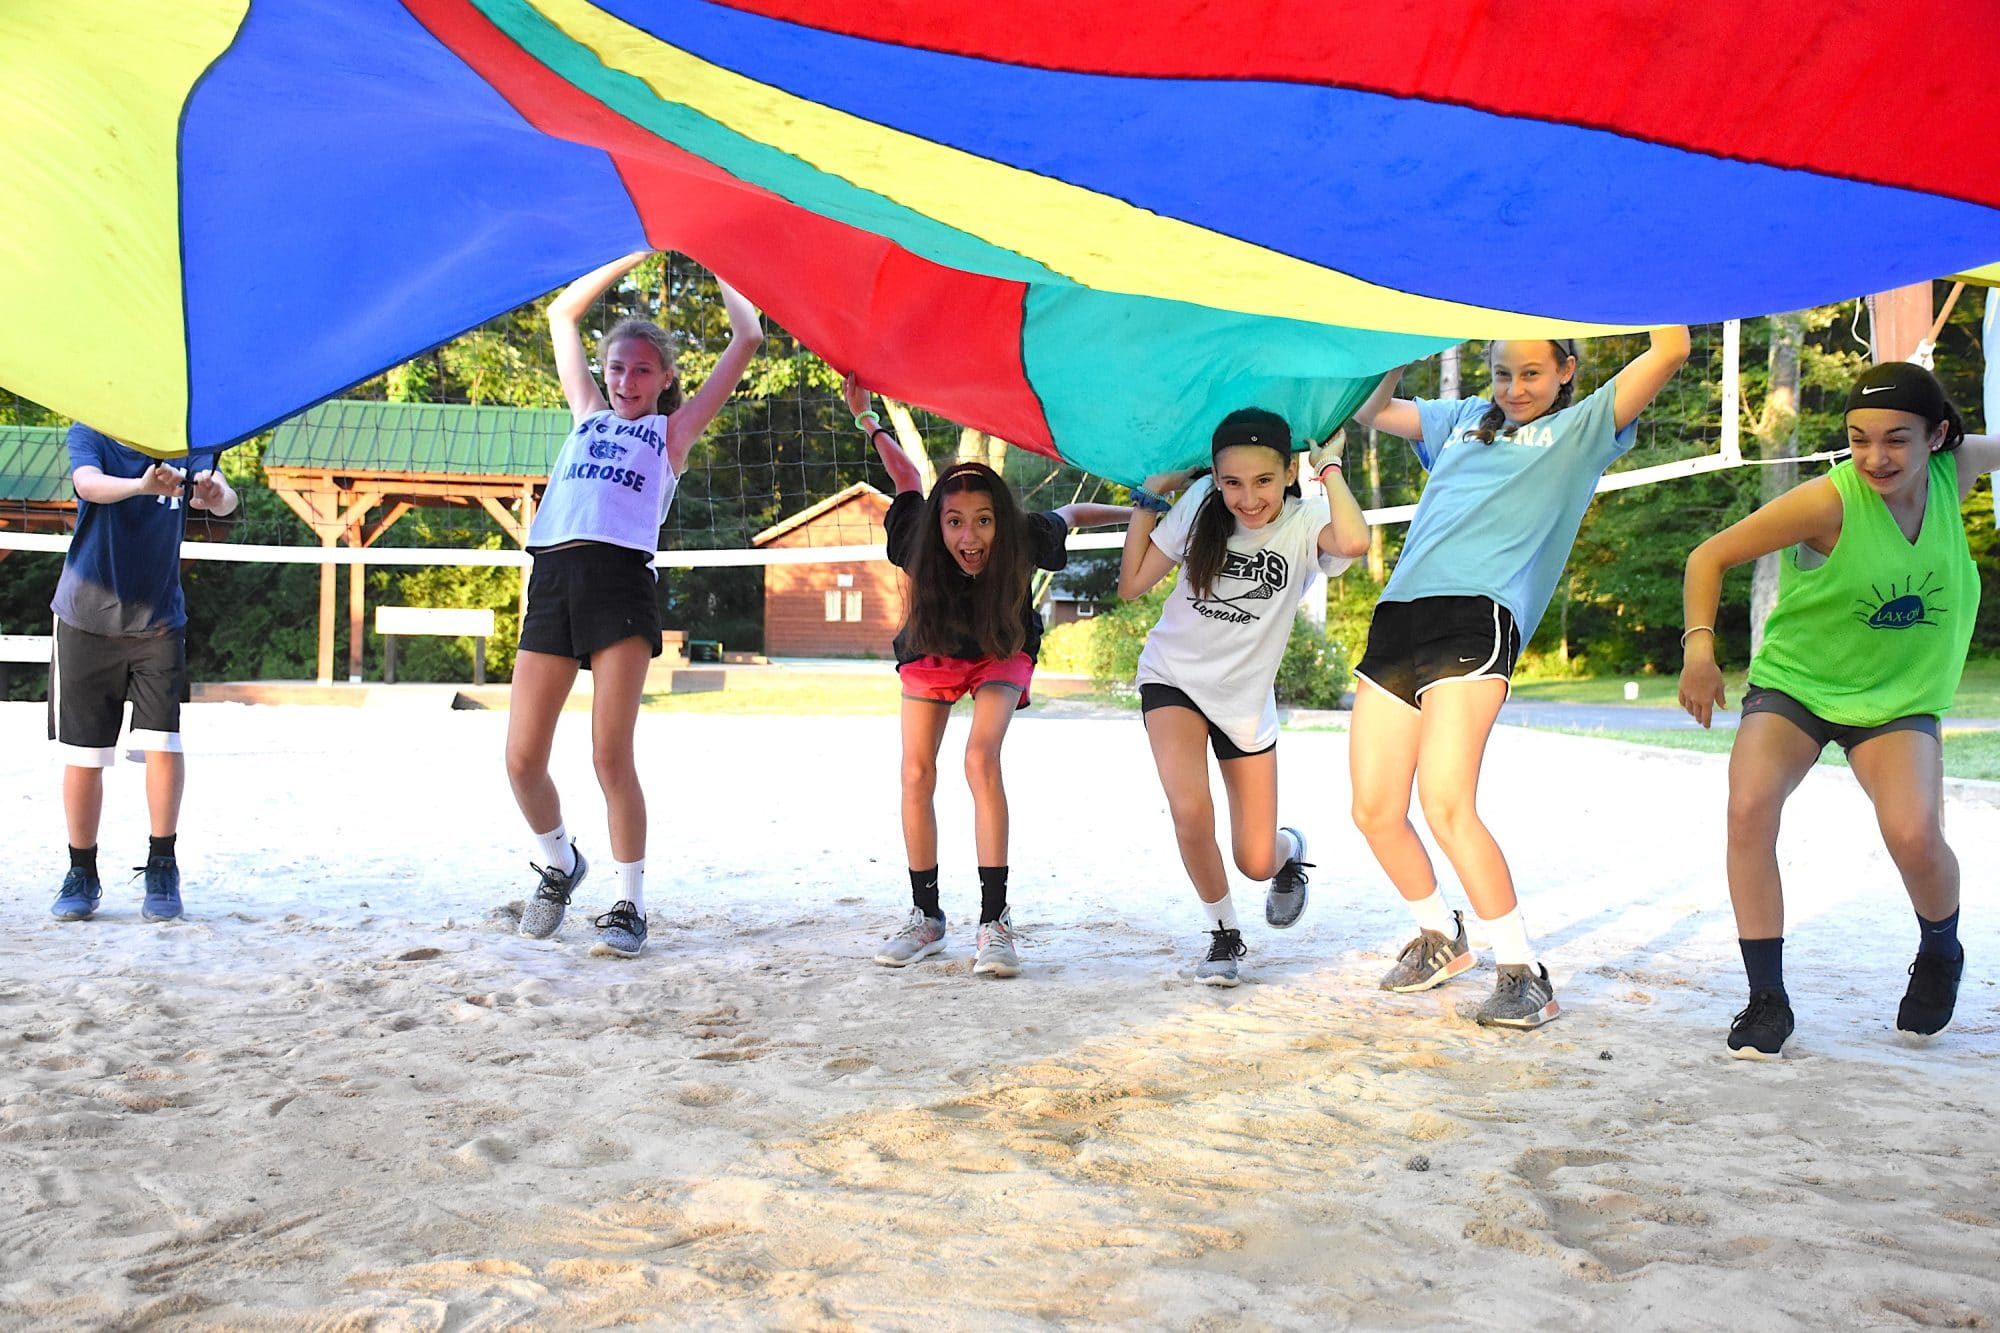 kids playing with giant canopy